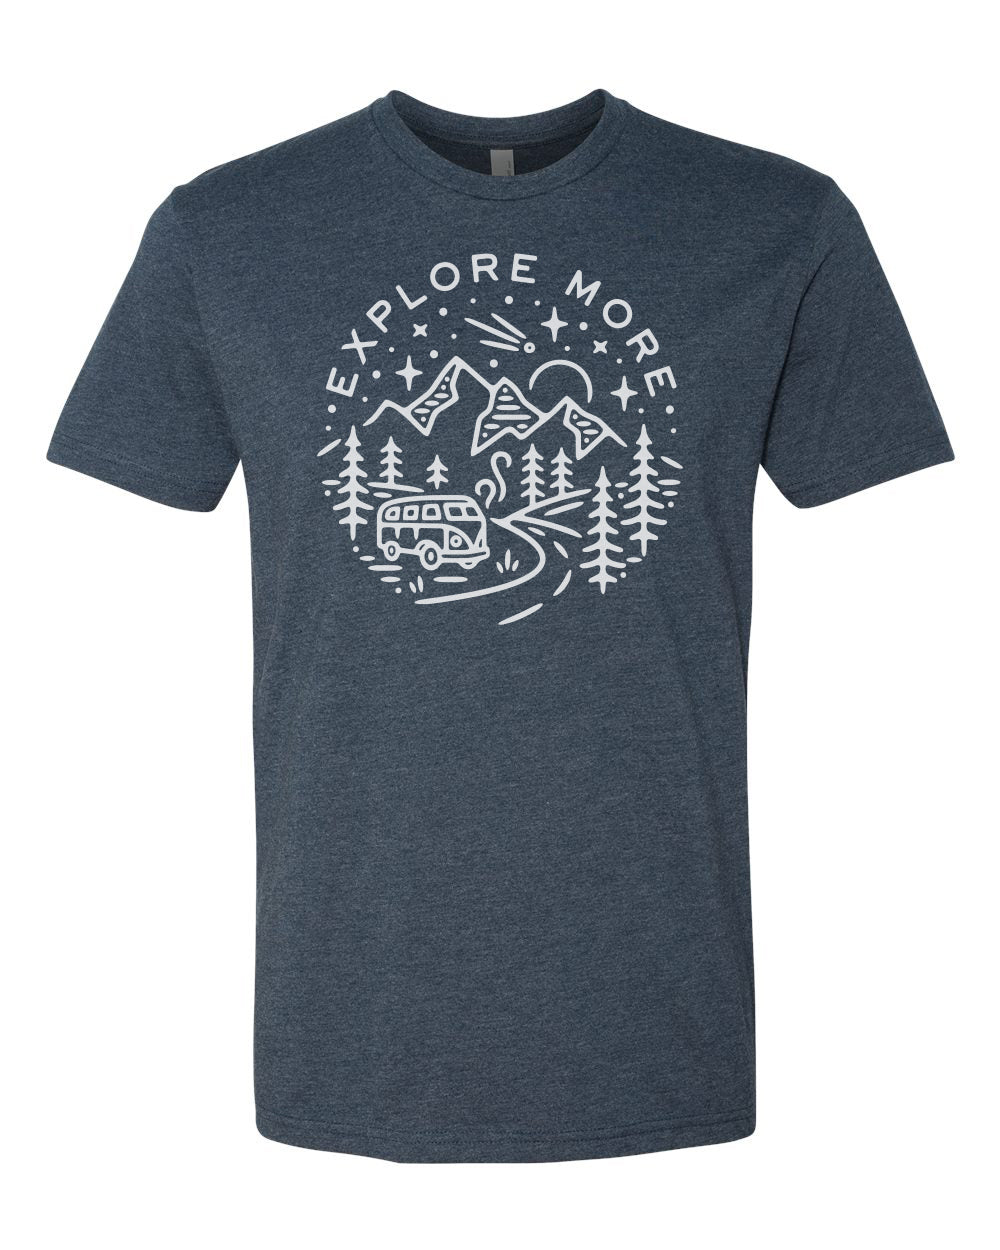 Explore More T-Shirt